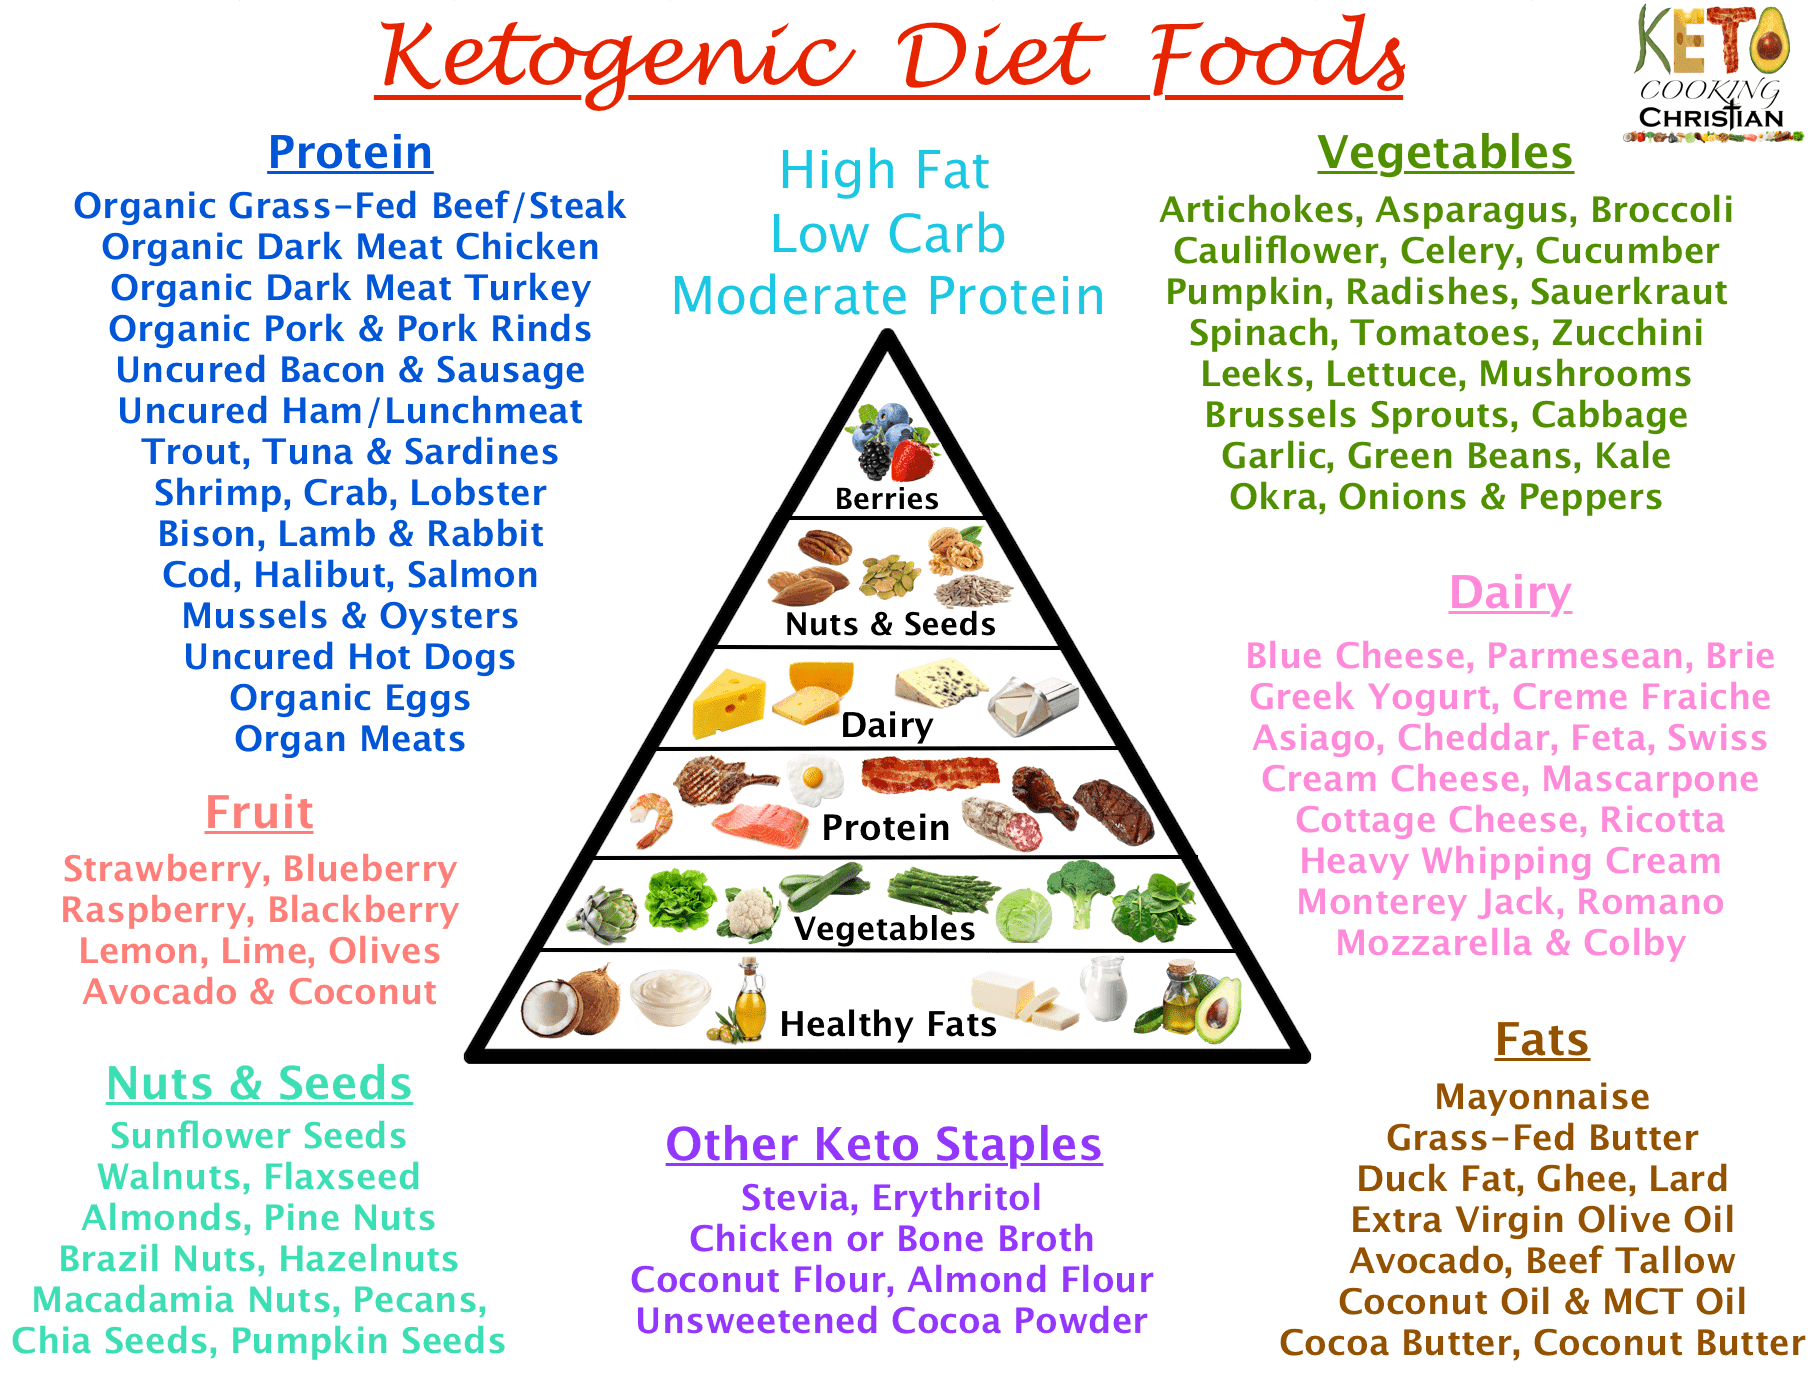 Keto Diet Food List - What Can I Eat? - Wanna Liv